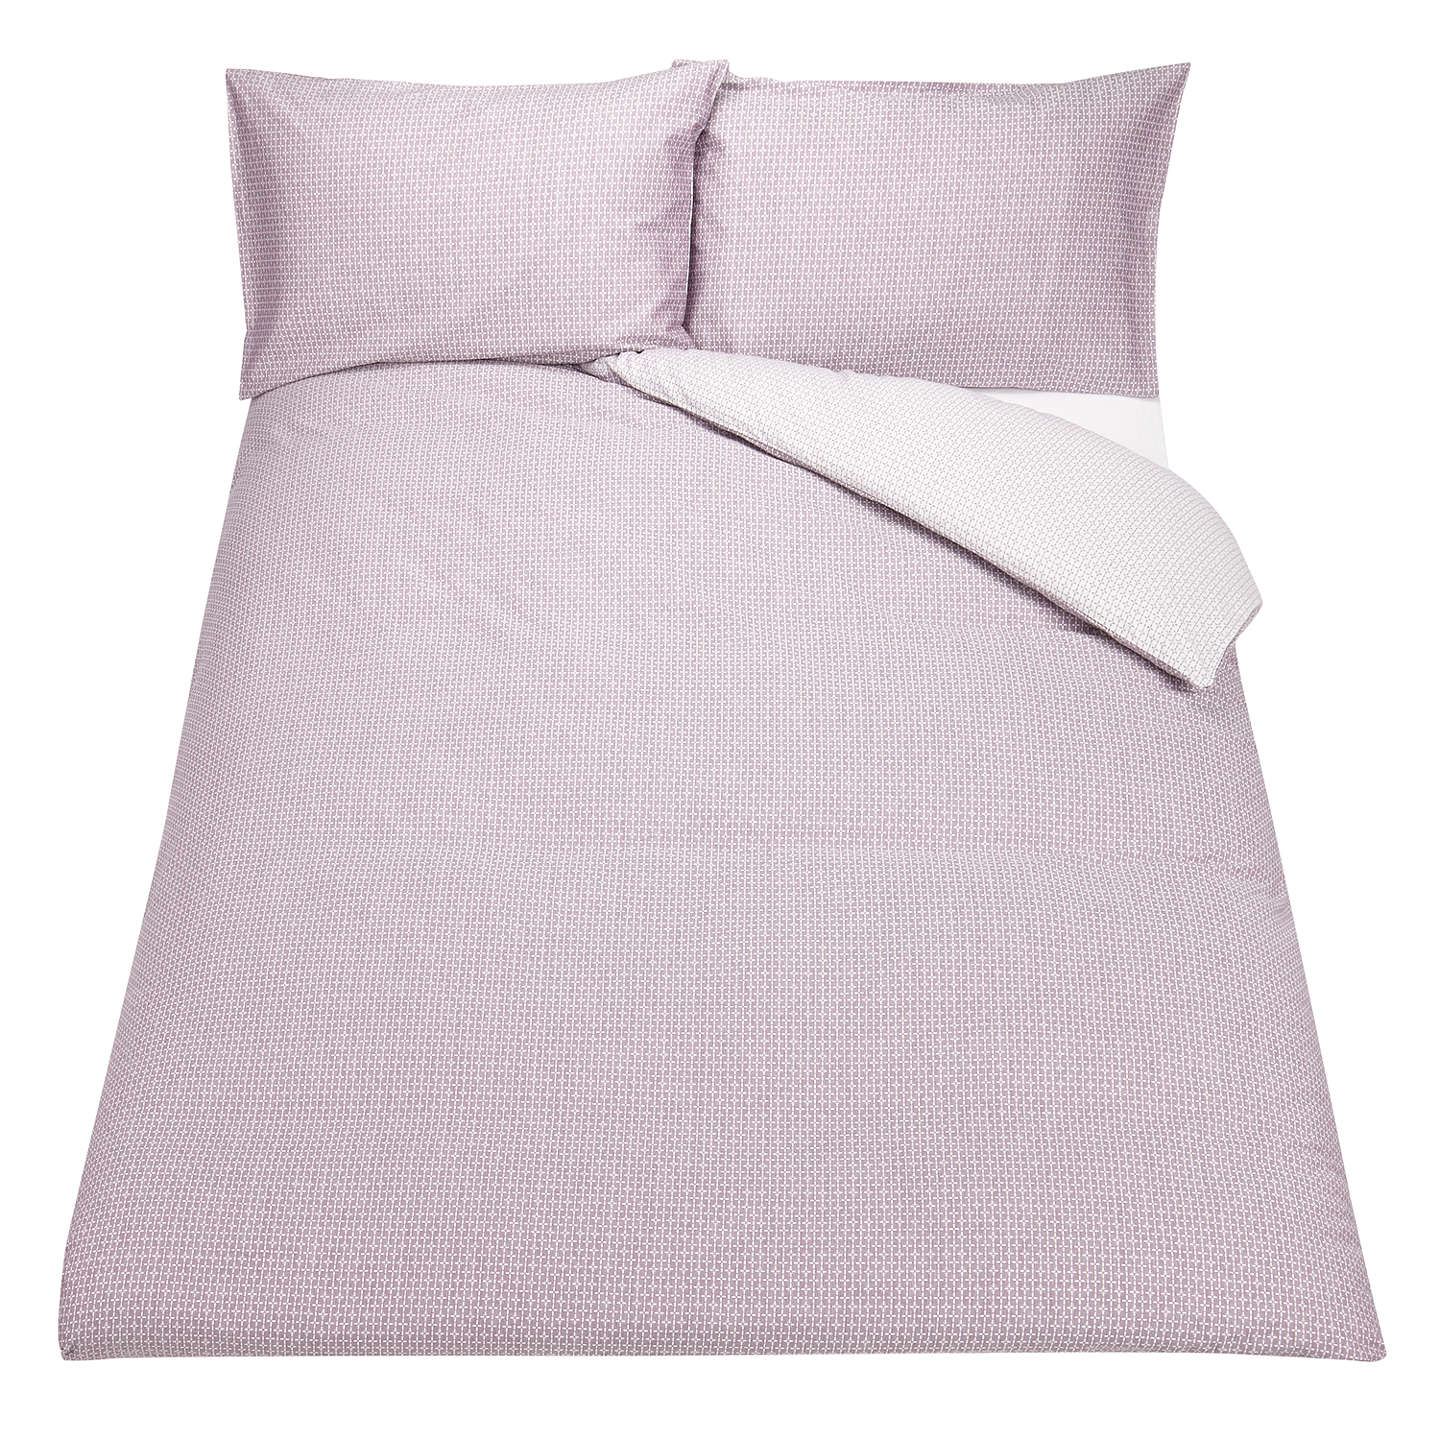 BuyJohn Lewis Country Ditton Duvet Cover and Pillowcase Set, Single, Purple Online at johnlewis.com